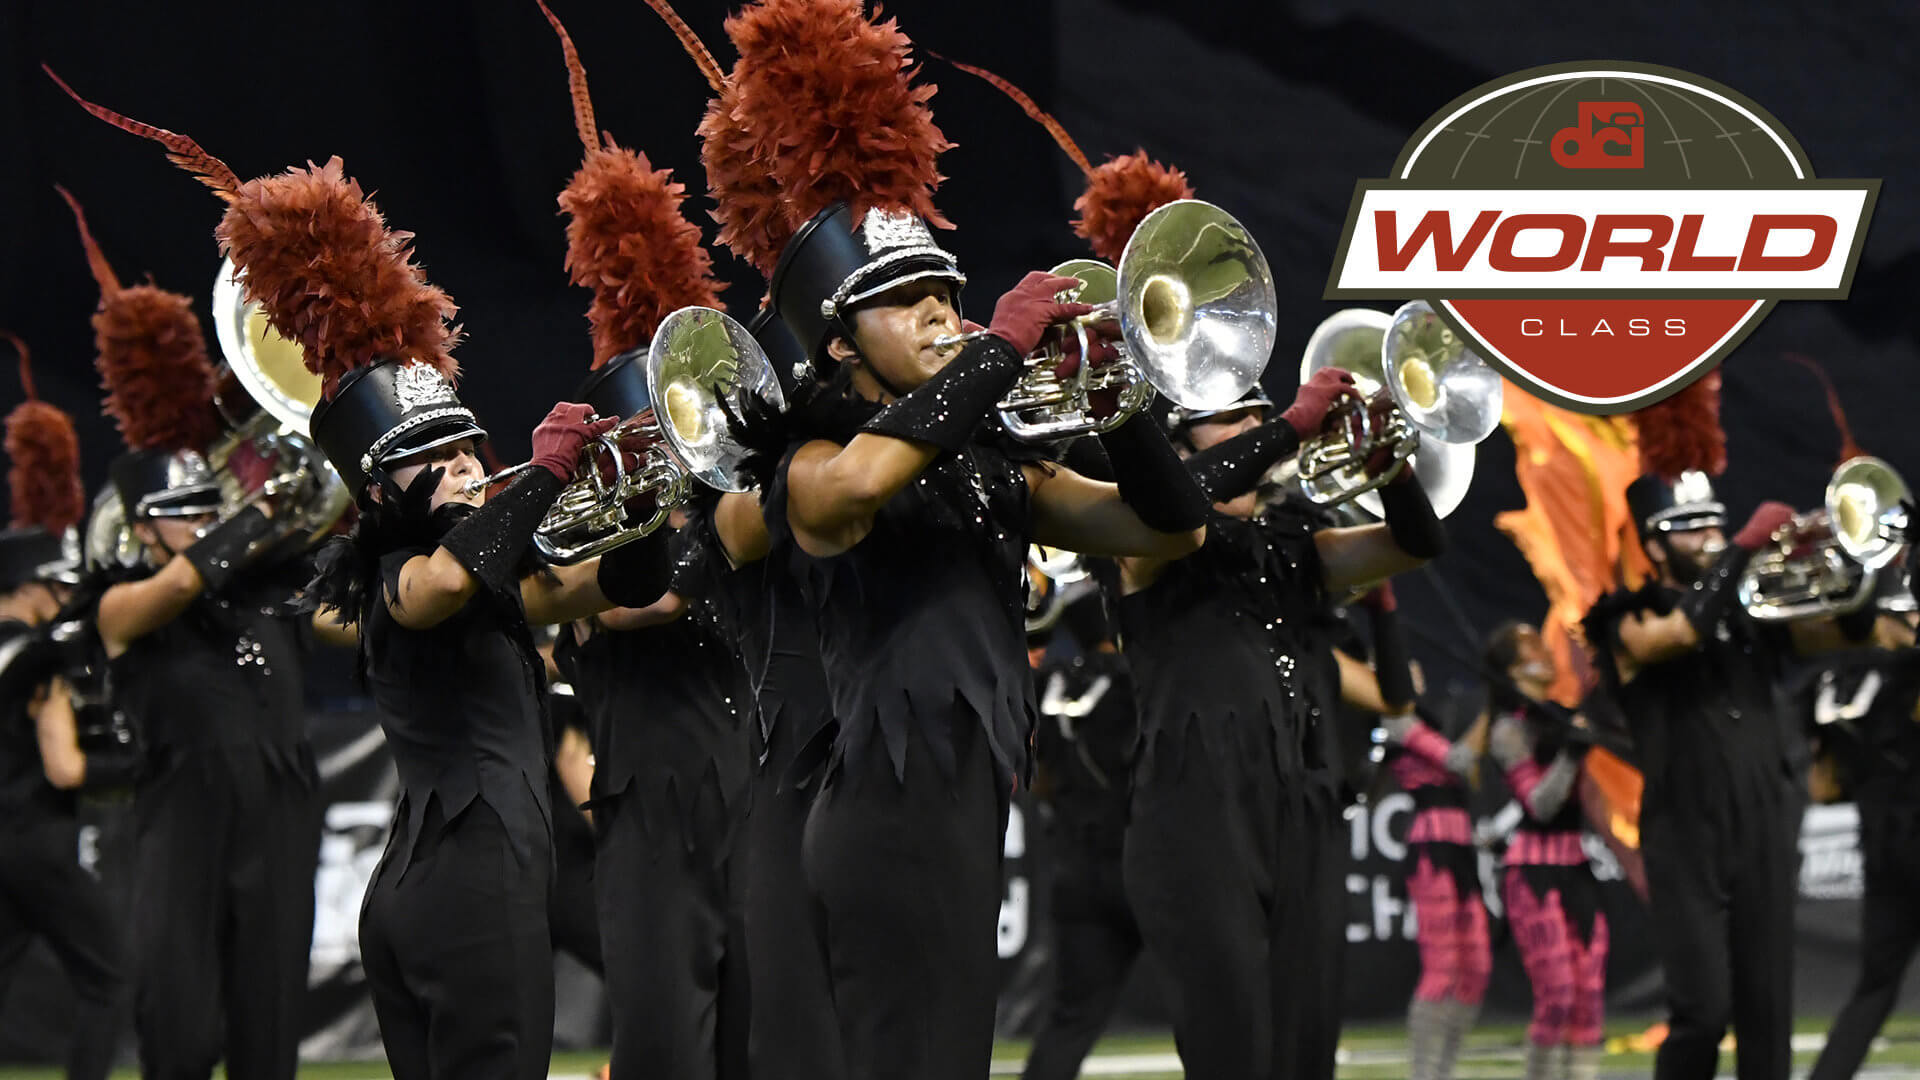 Music City approved for World Class competition